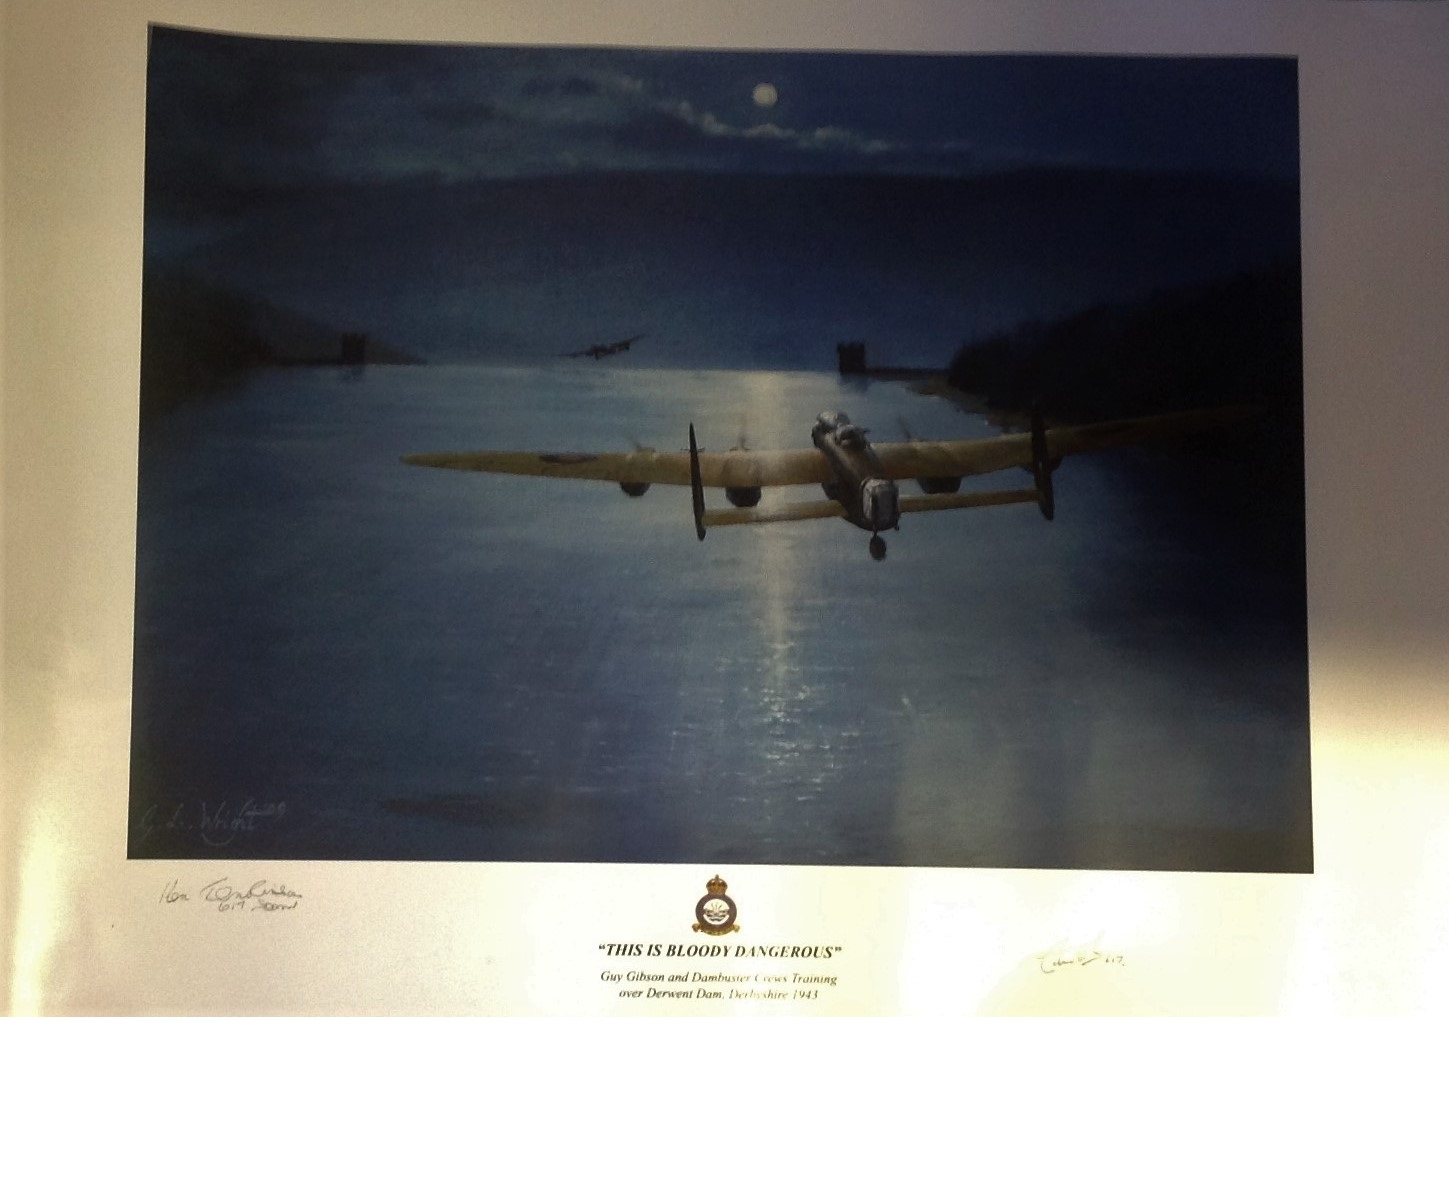 Lot 55 - Dambuster World War Two print 24x17 titled This Is Bloody Dangerous by the artist Gordon Wright